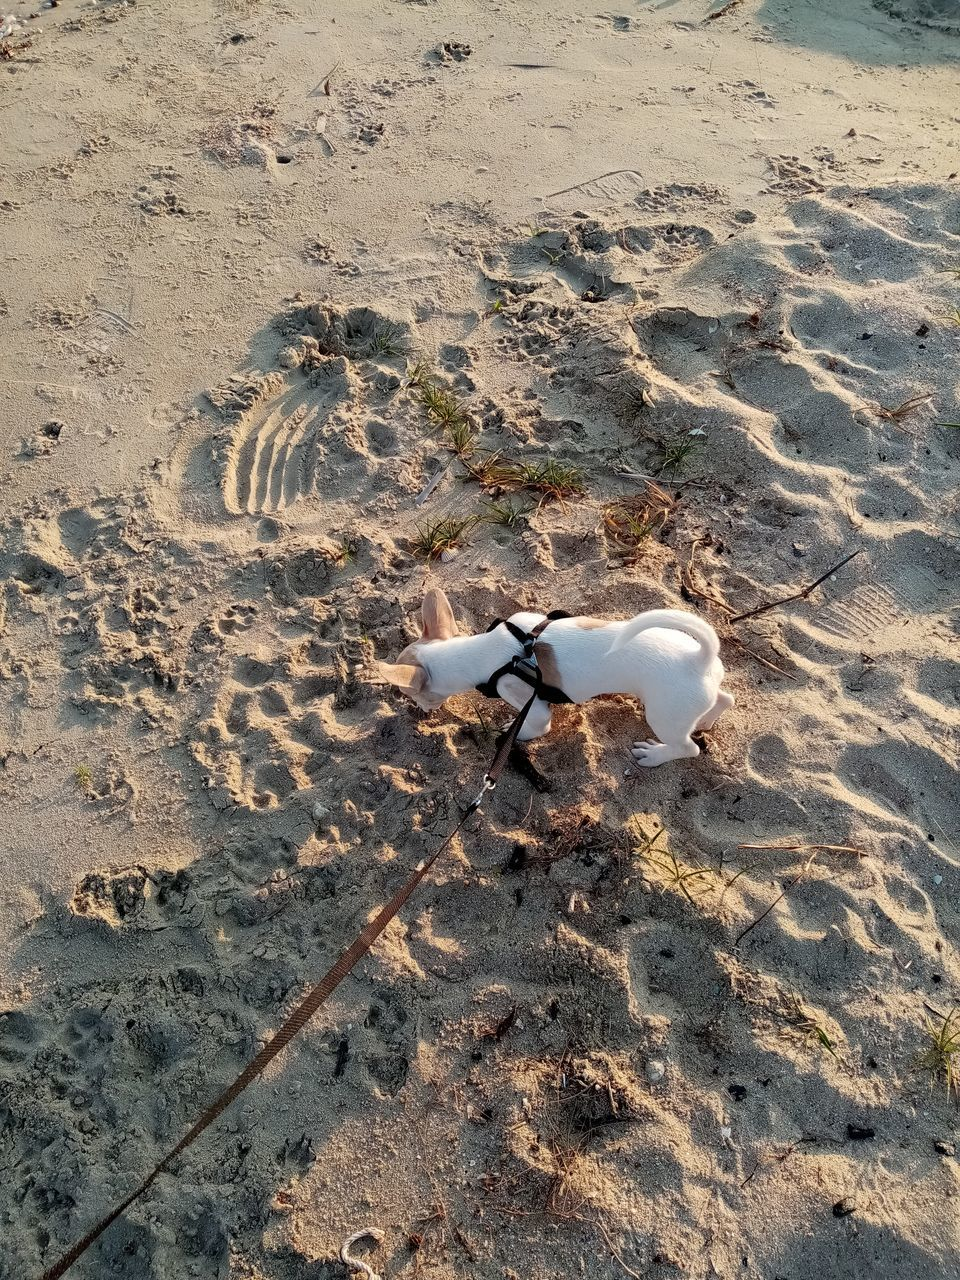 HIGH ANGLE VIEW OF HORSE ON SAND